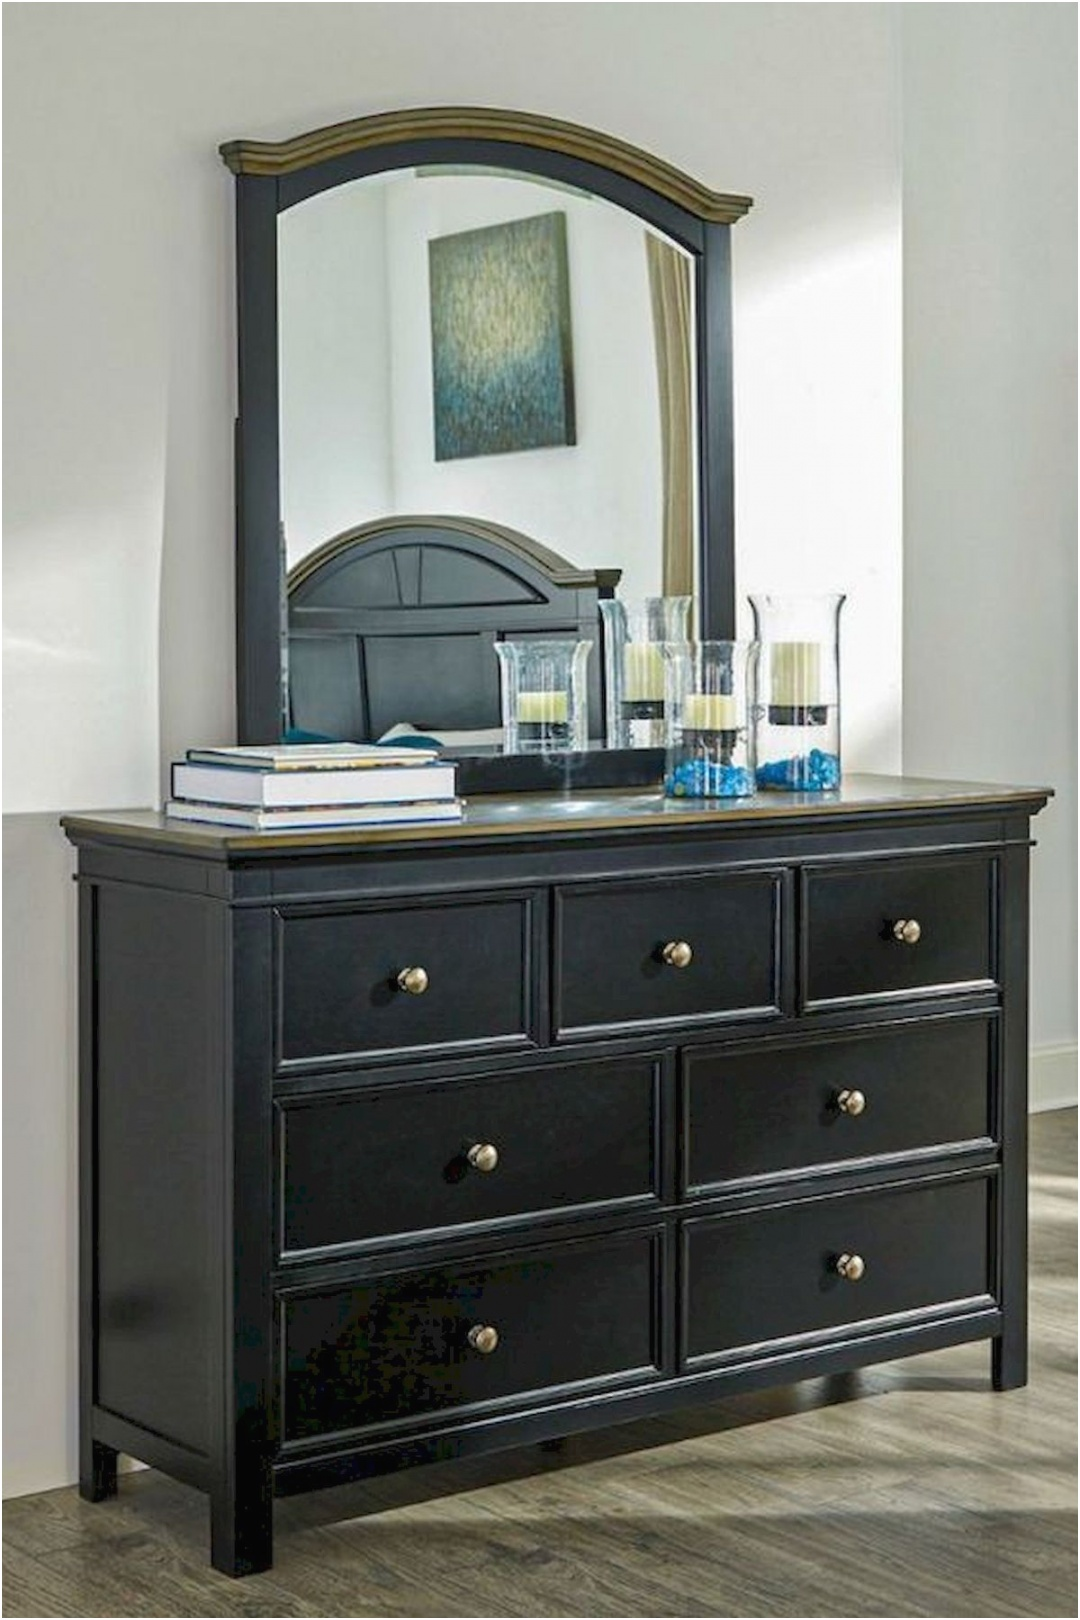 20 Cool Dresser With Mirror for Your Bedroom 1